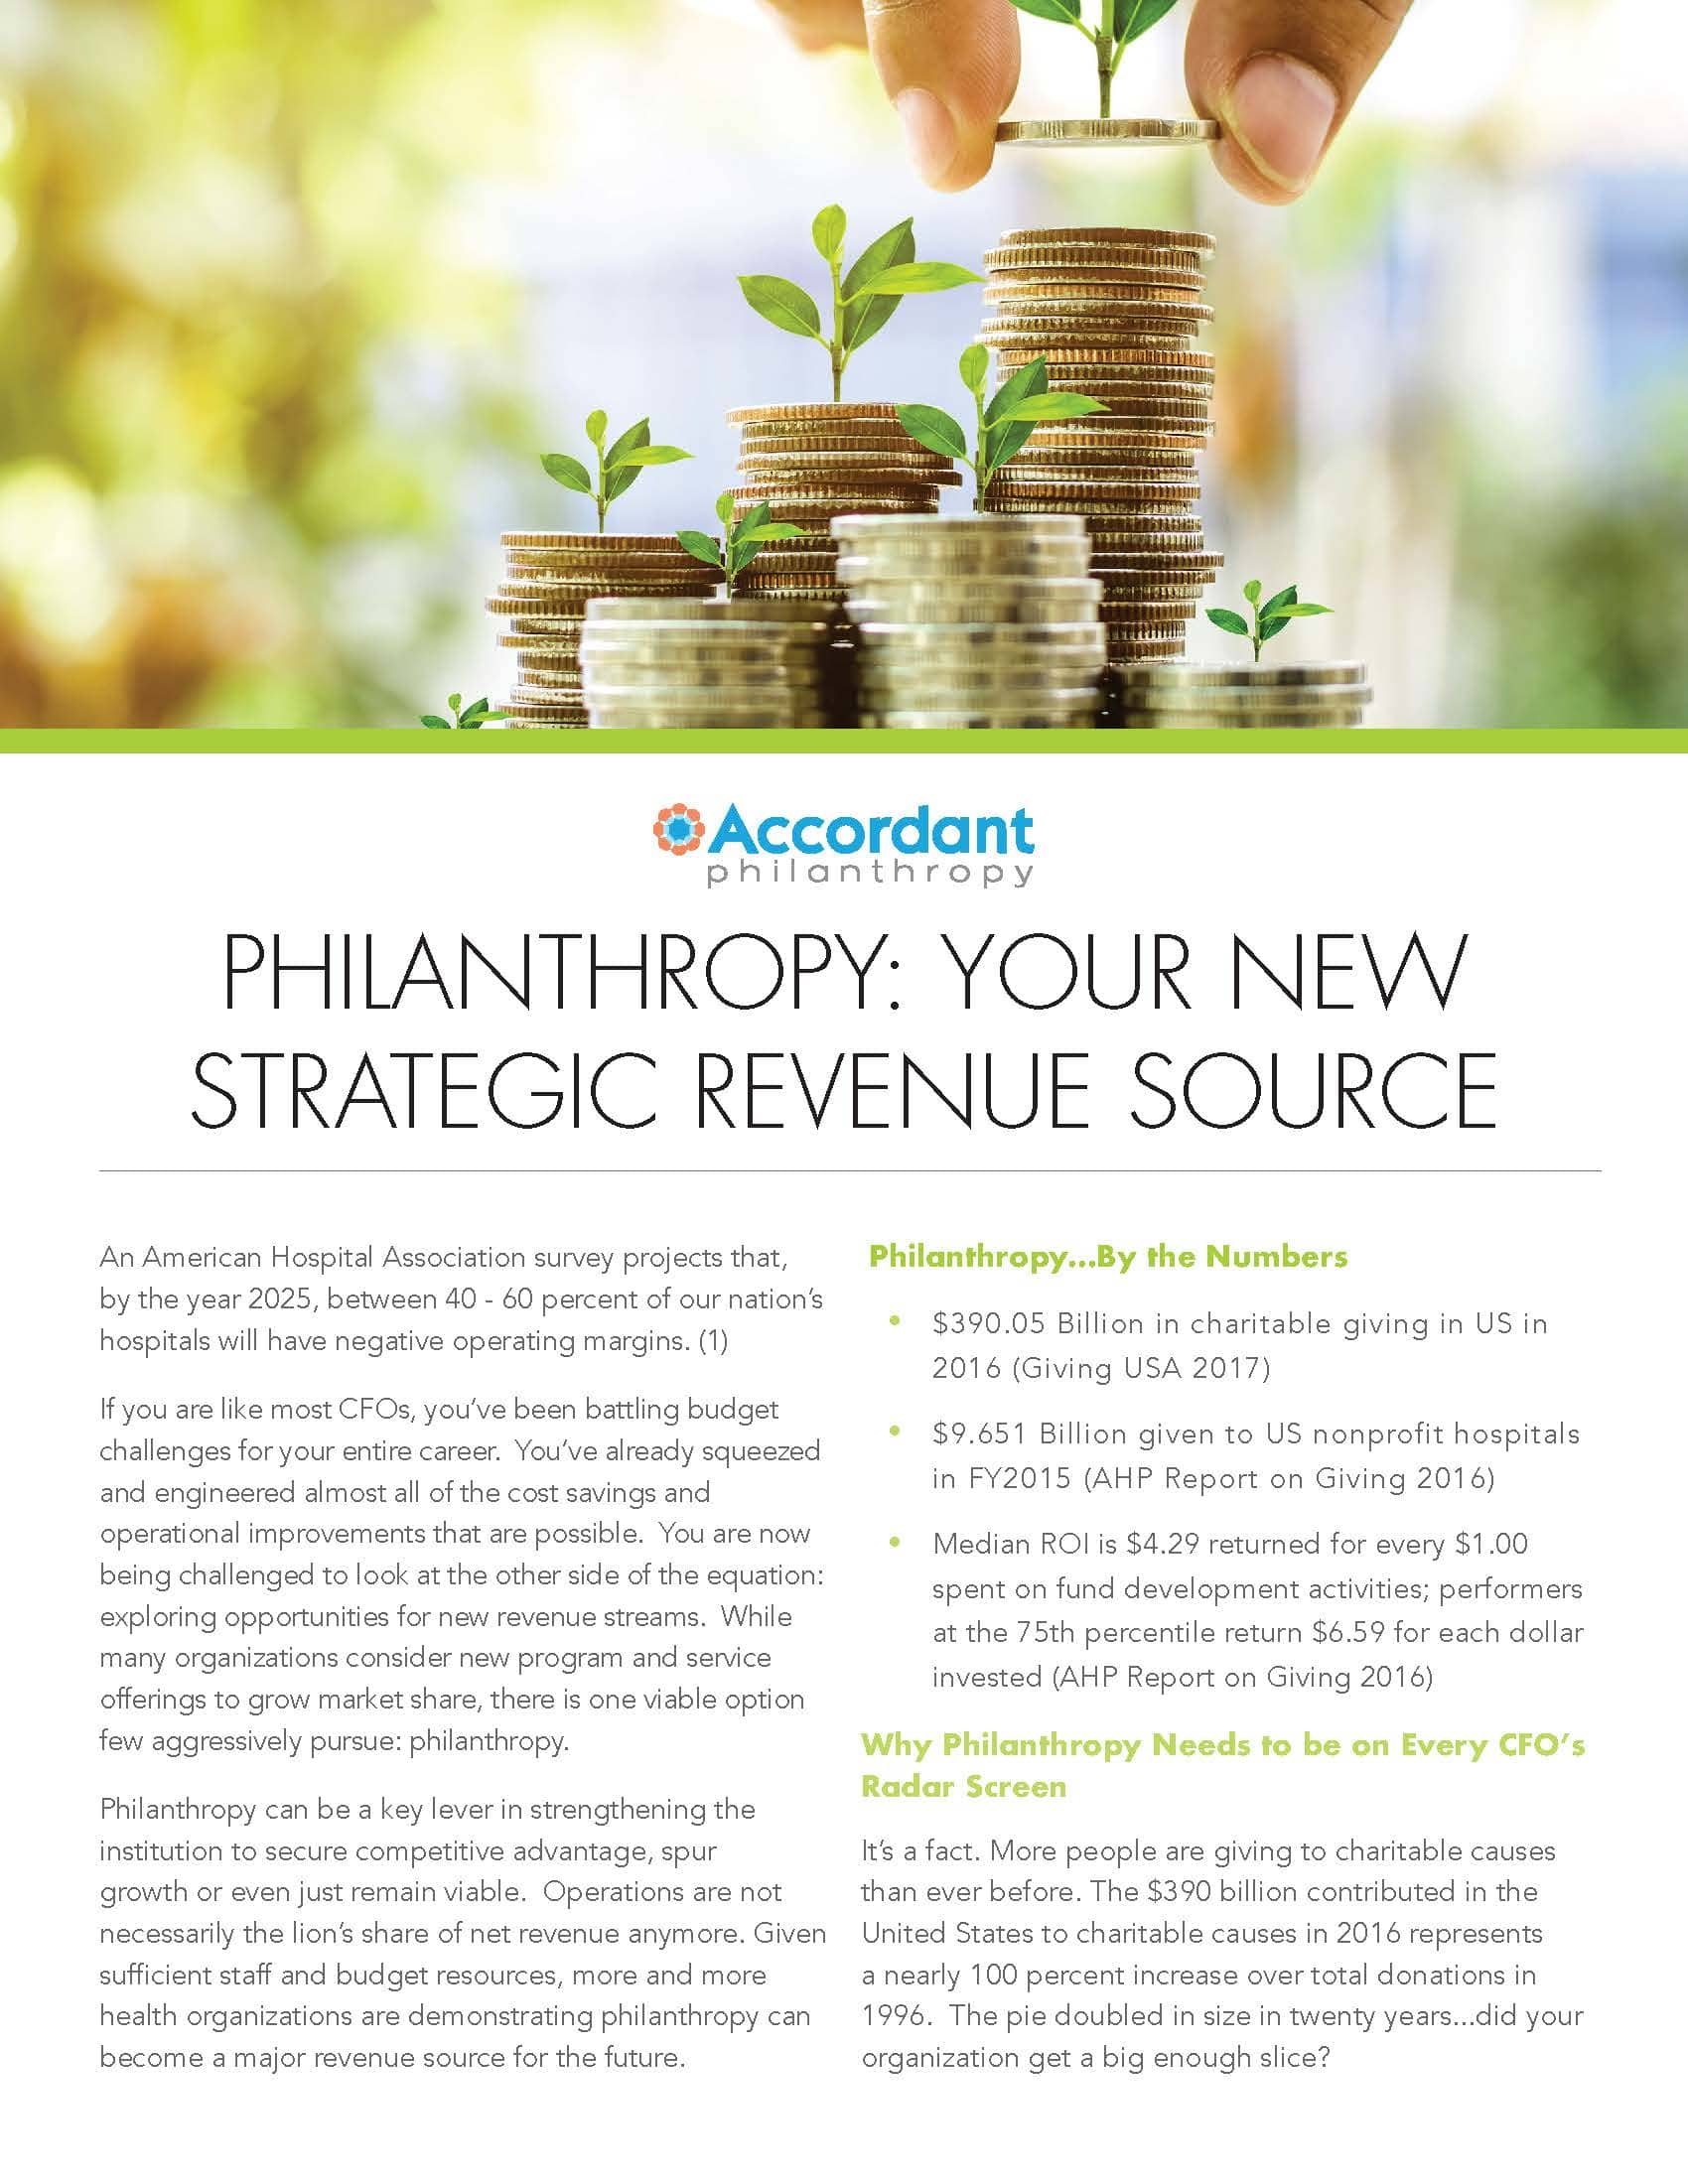 Philanthropy: Your New Strategic Revenue Source